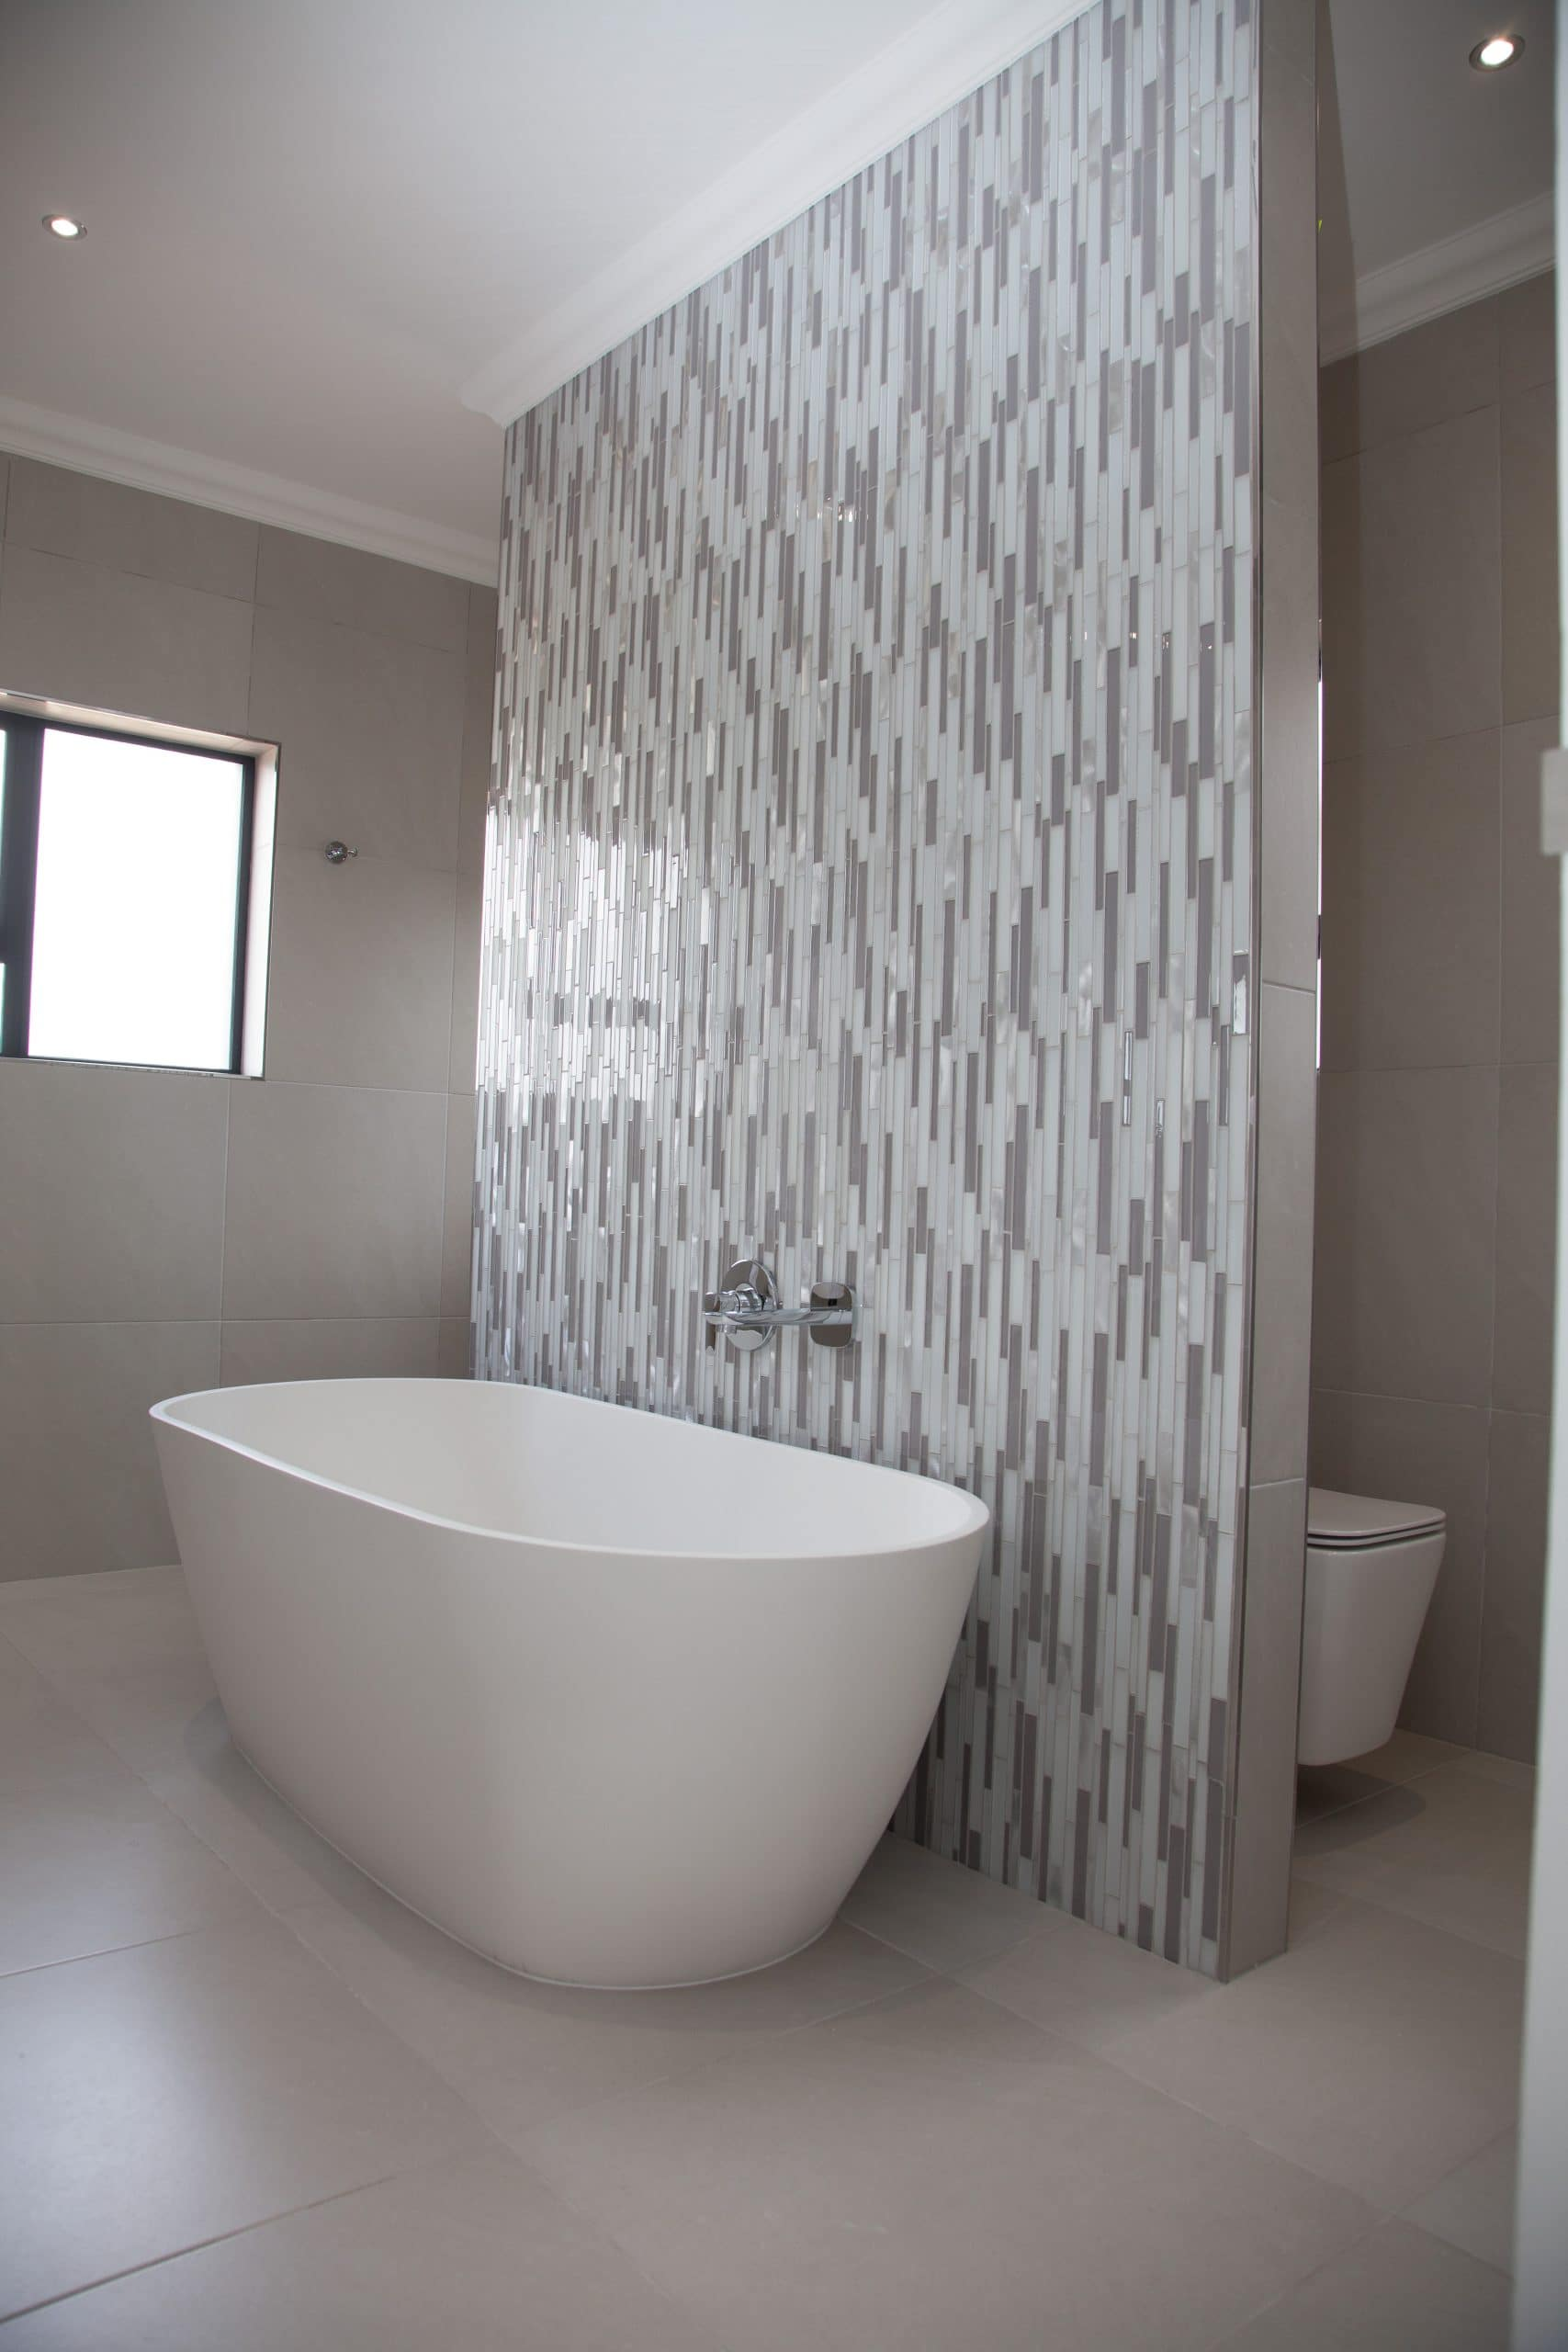 mosaic bathroom wall with freestanding bath